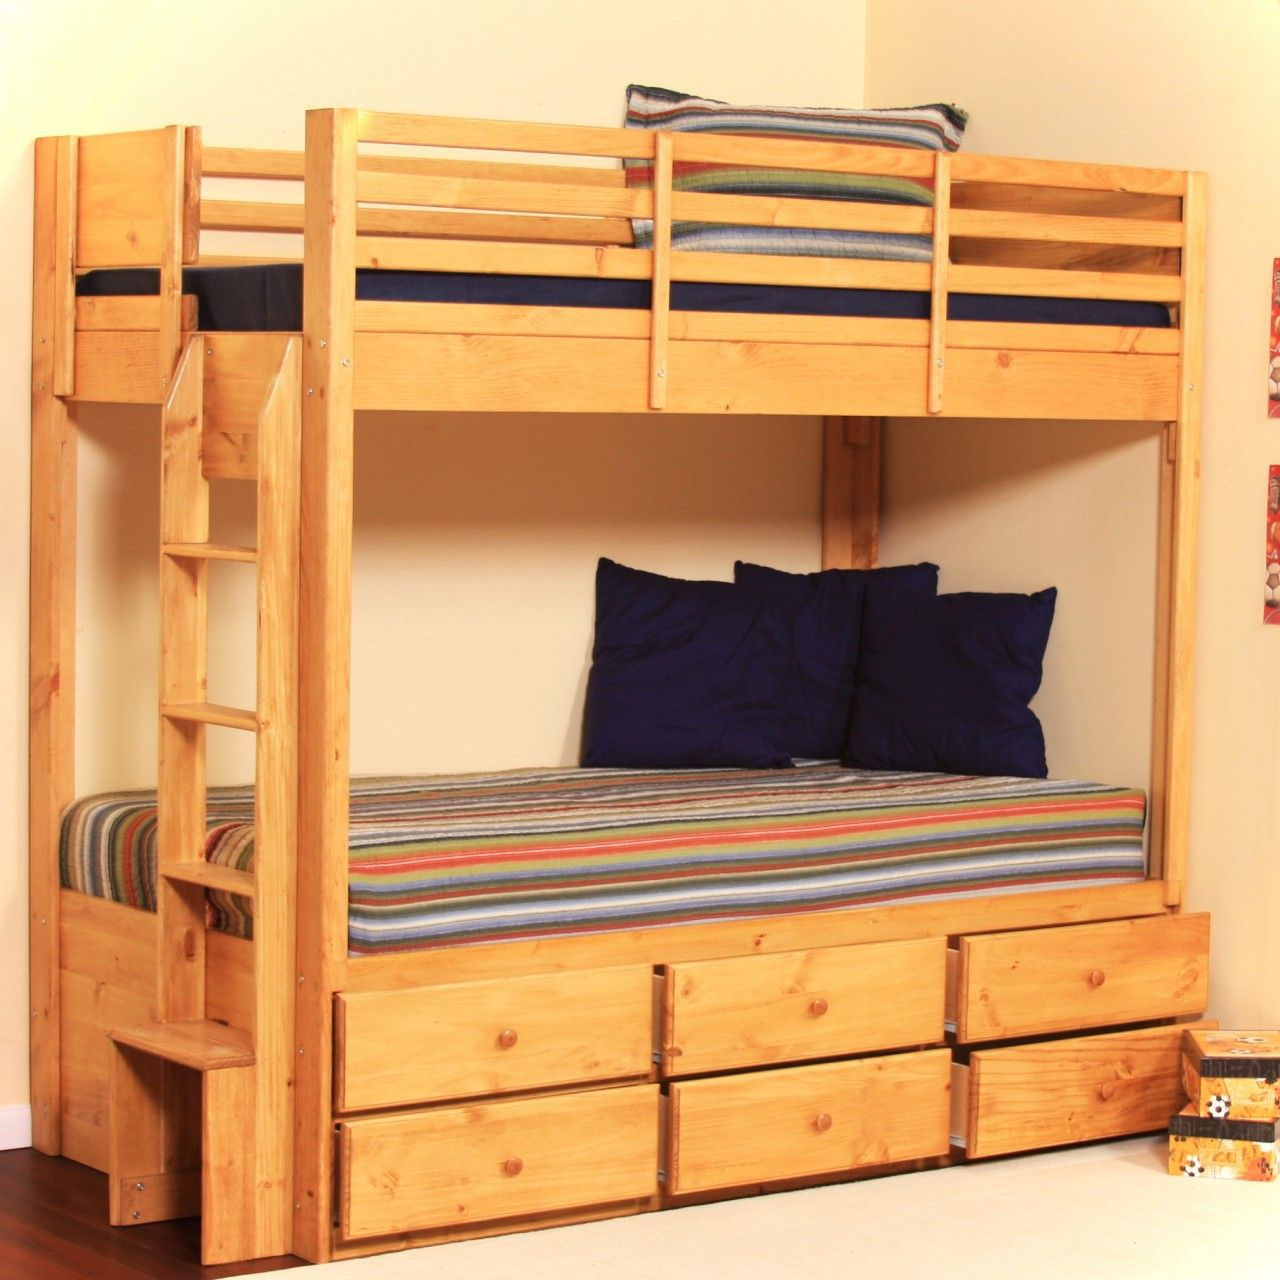 Twin Bunk Beds With Storage Drawers My Kids Love Their Bunk Bed